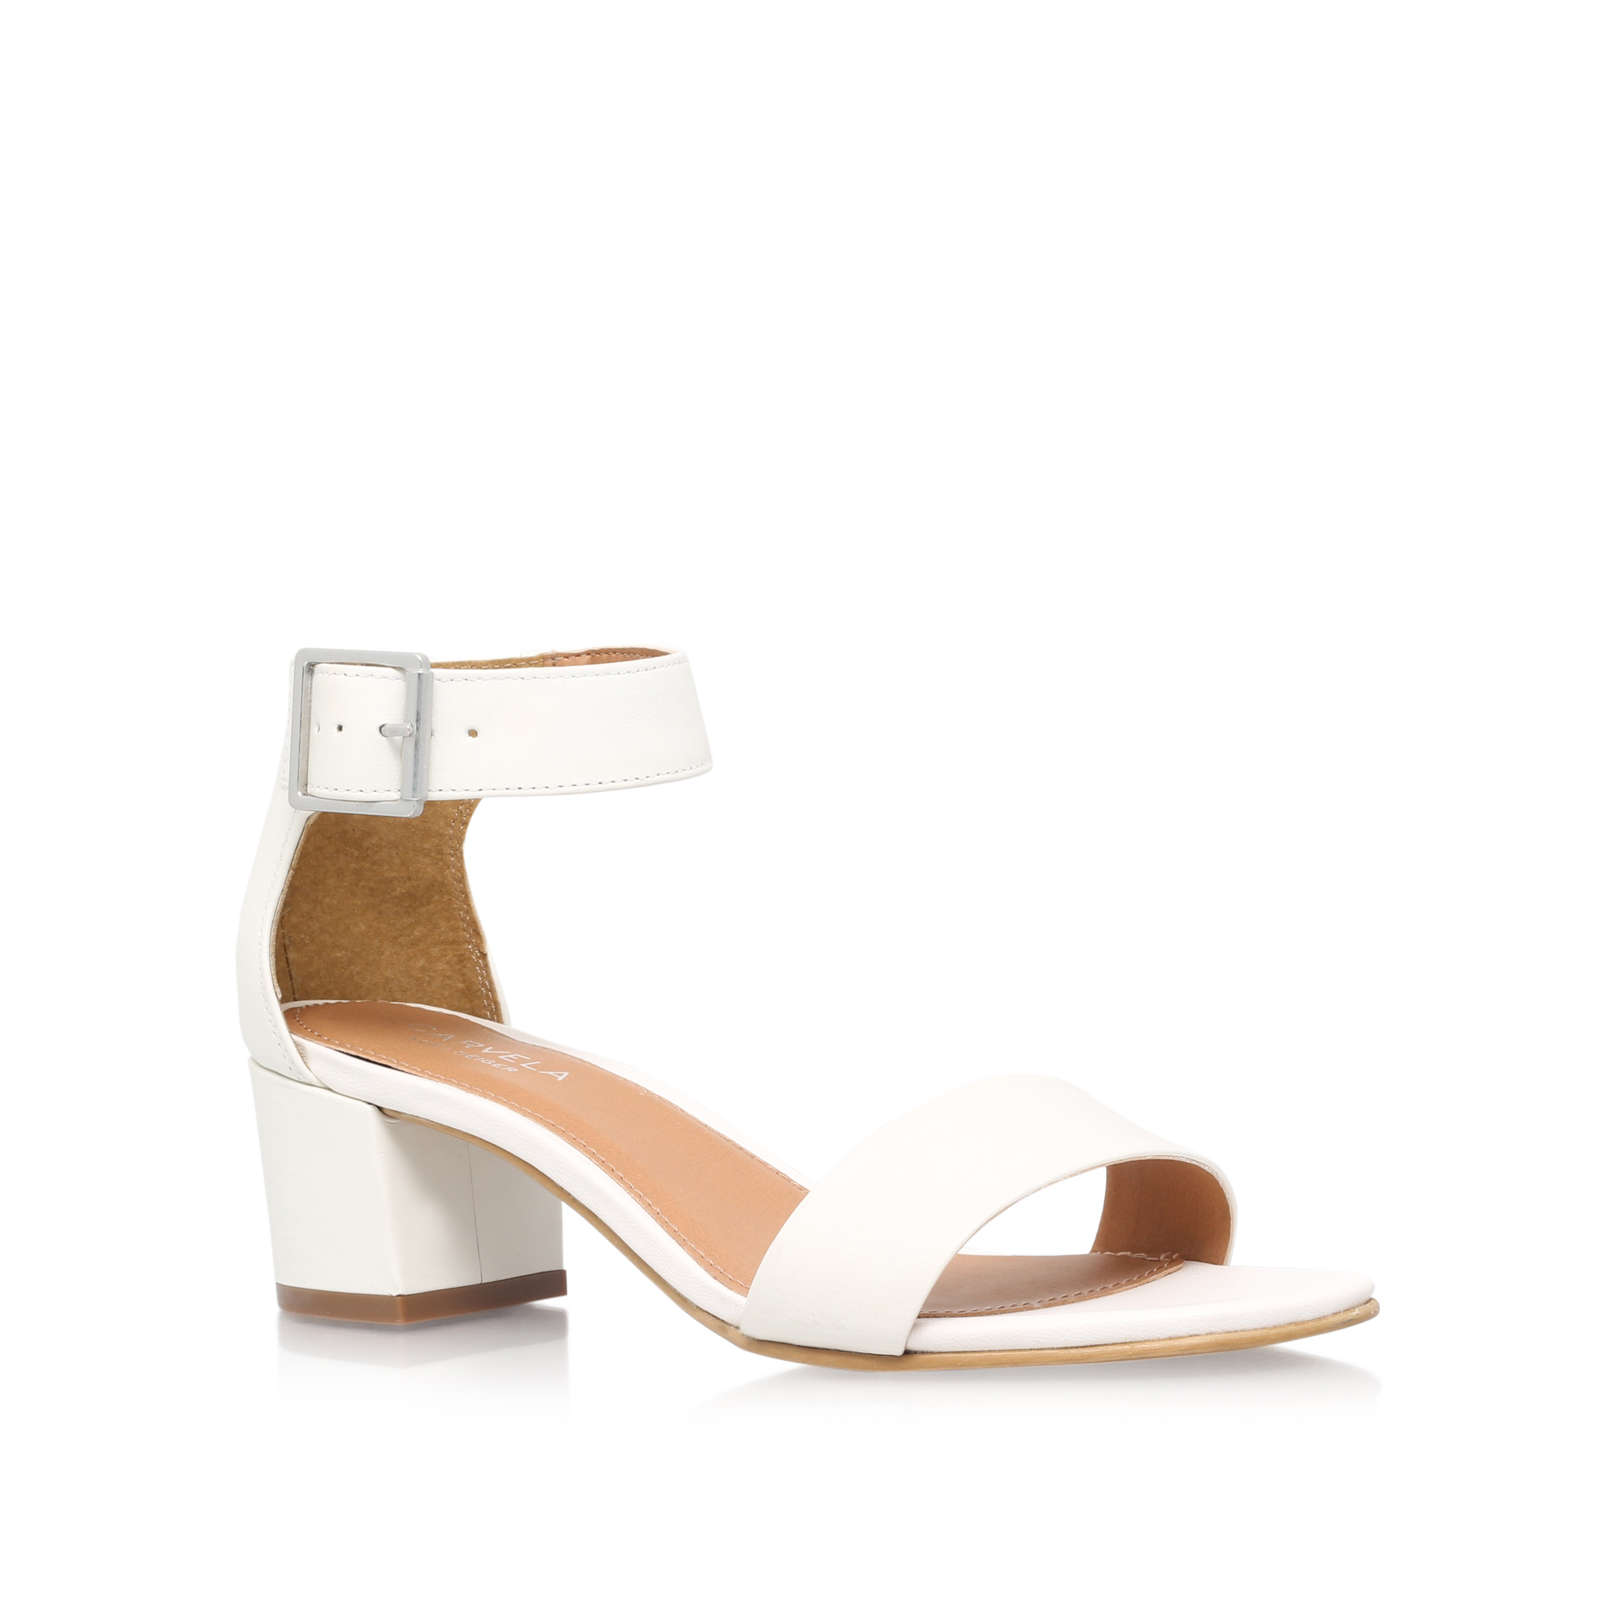 ae9f697e65d SHADOW Carvela Shadow White Leather Sandals Block Heel by CARVELA